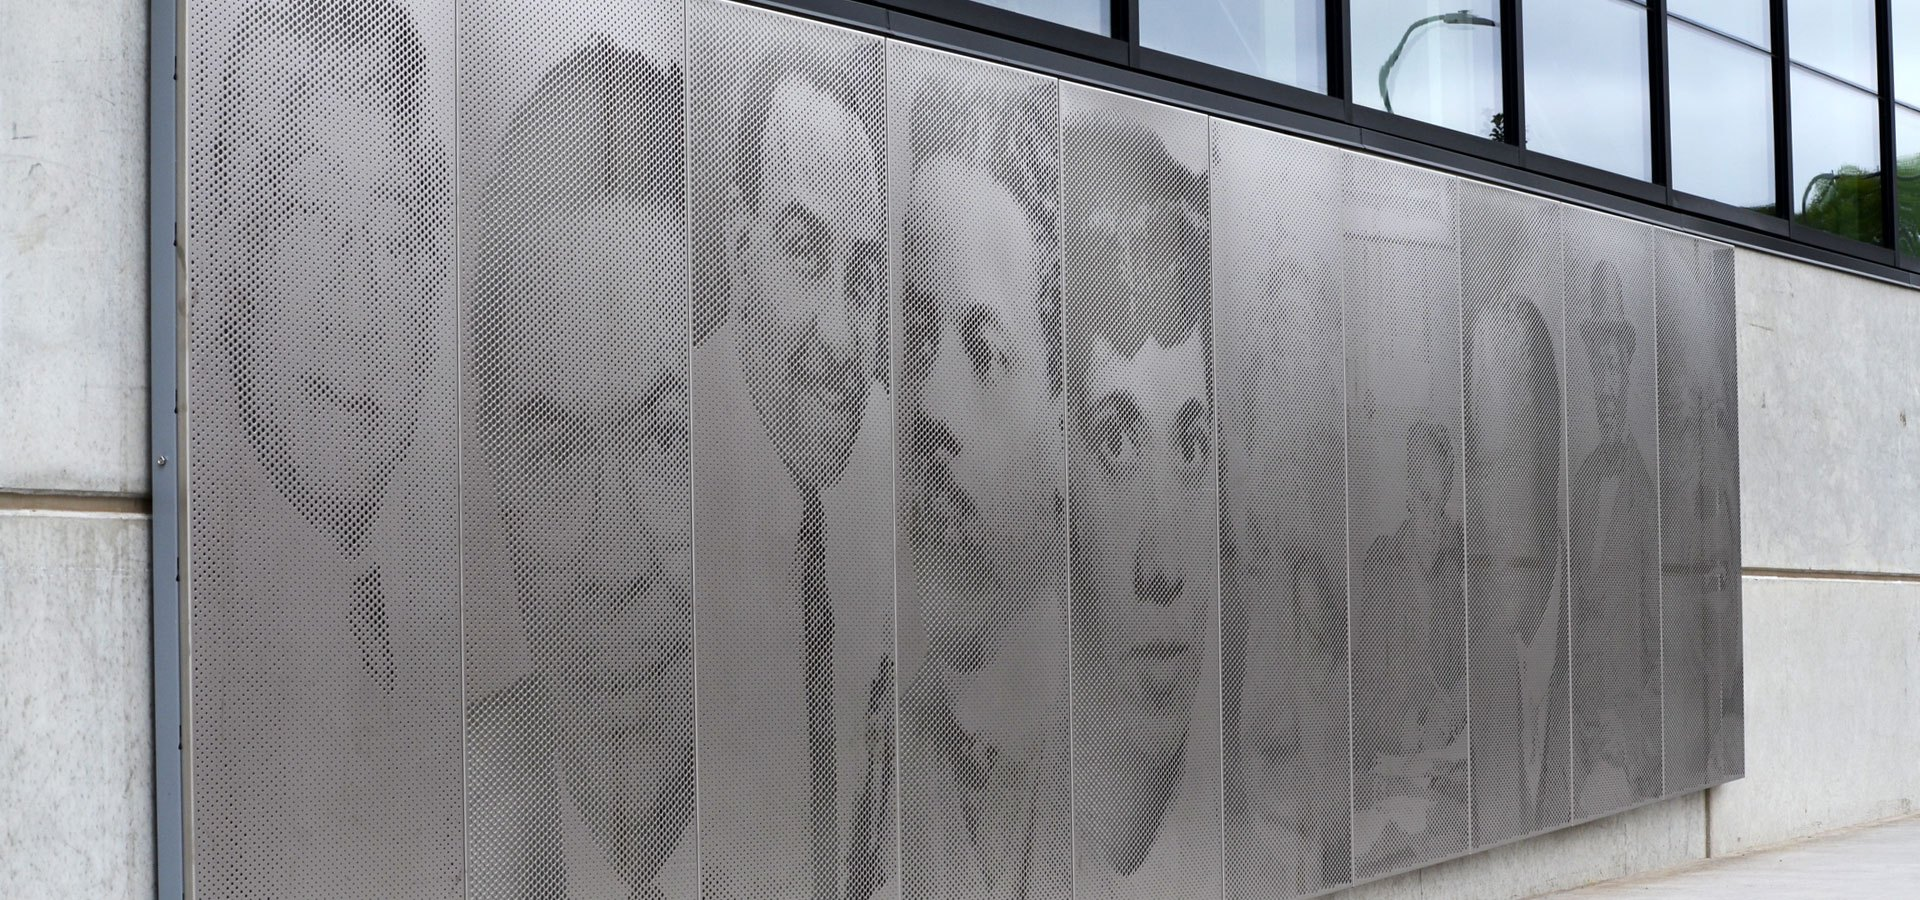 A building wall with decorative portraits etched in metal